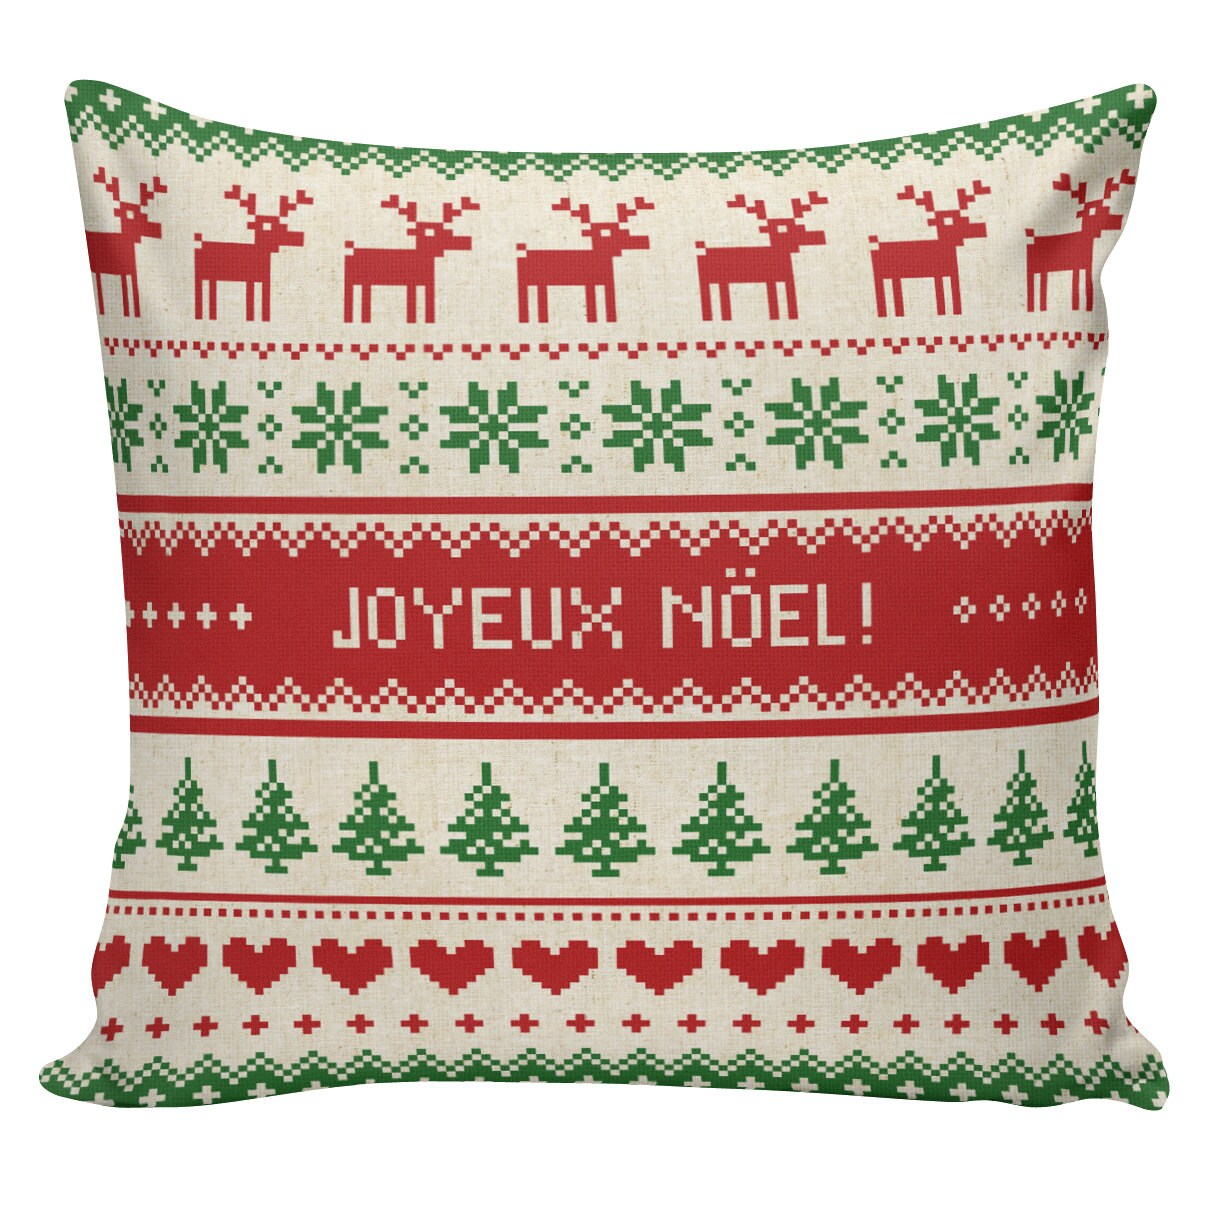 Scandinavian Christmas Pillow : Christmas Pillow Vintage Burlap Pillow Cover Scandinavian